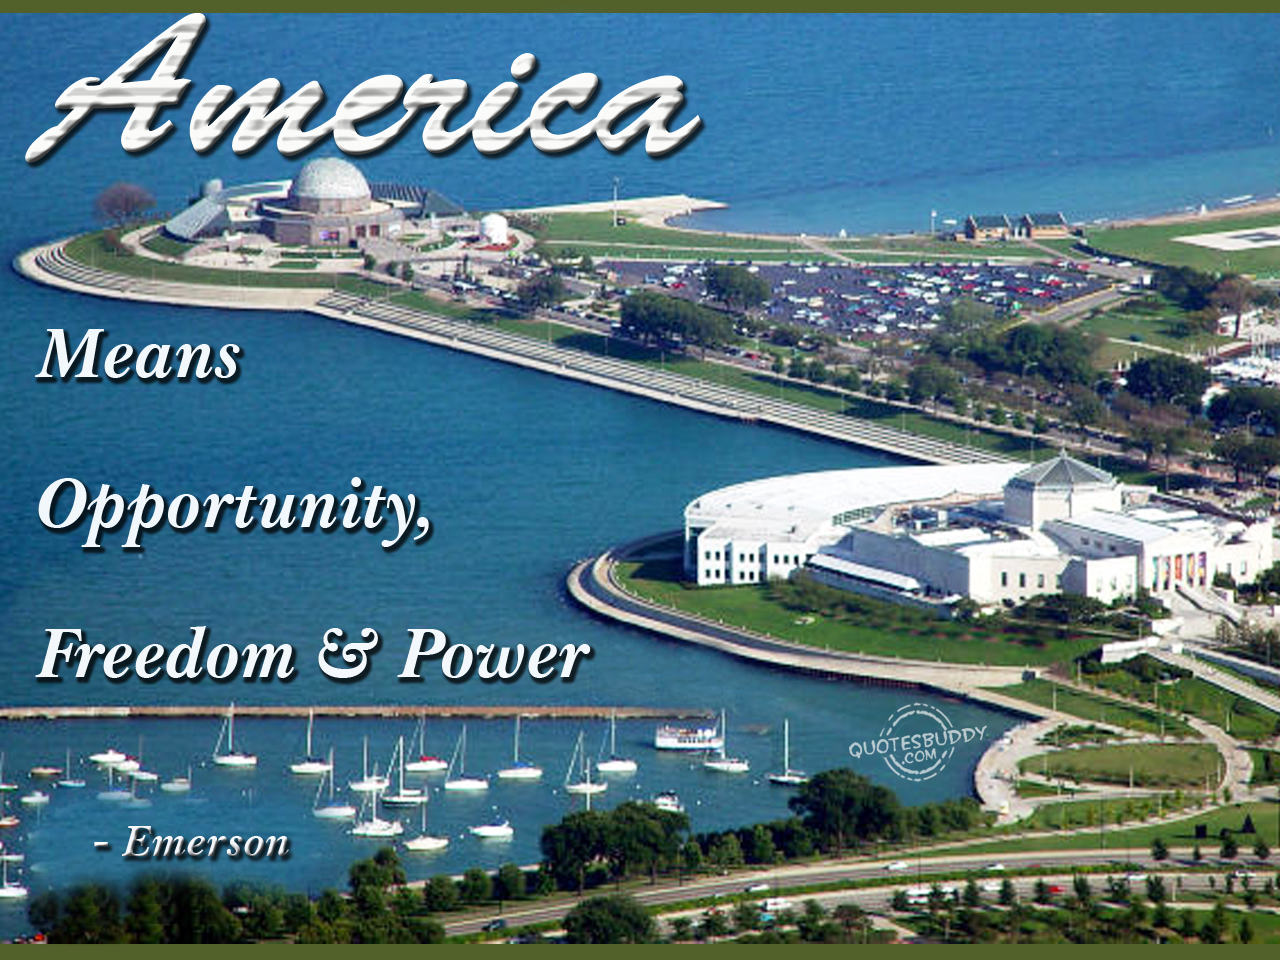 America Means Opportunity, Freedom & Power